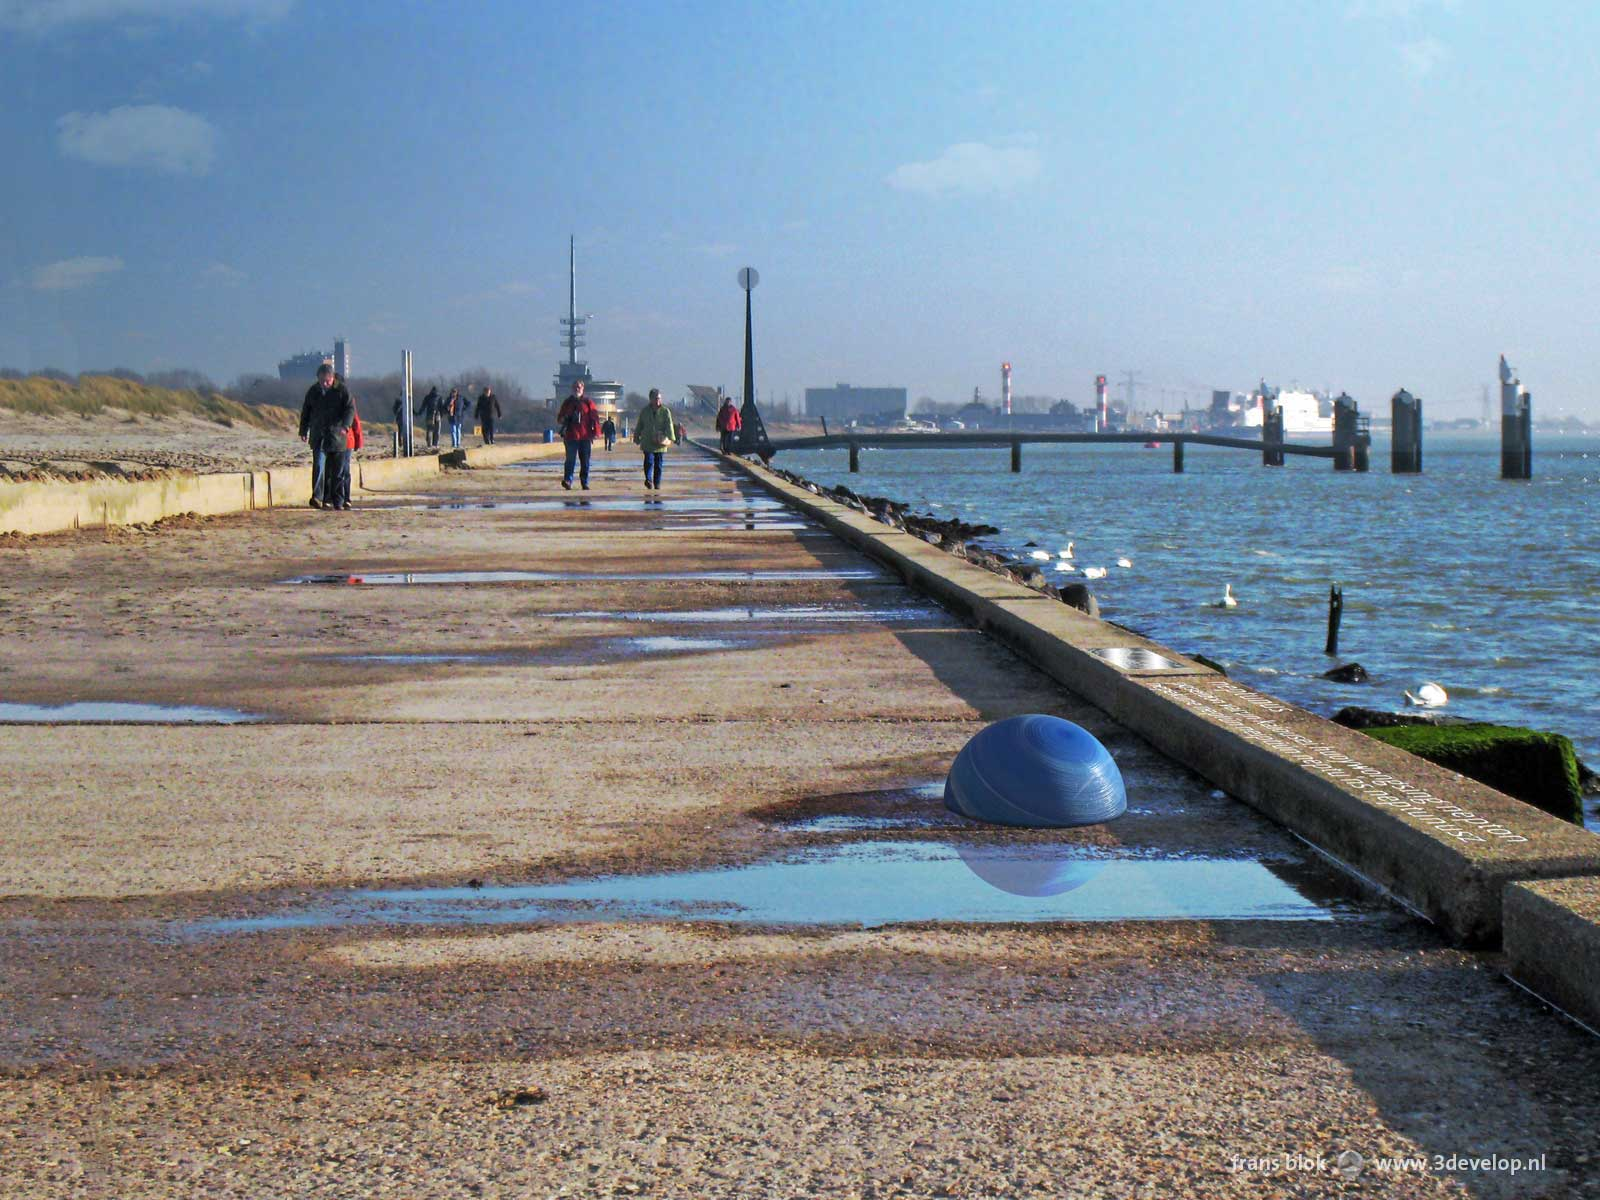 The planet Neptune, part of the proposed Rotterdam Streetplanetarium, on the Pier in Hook of Holland